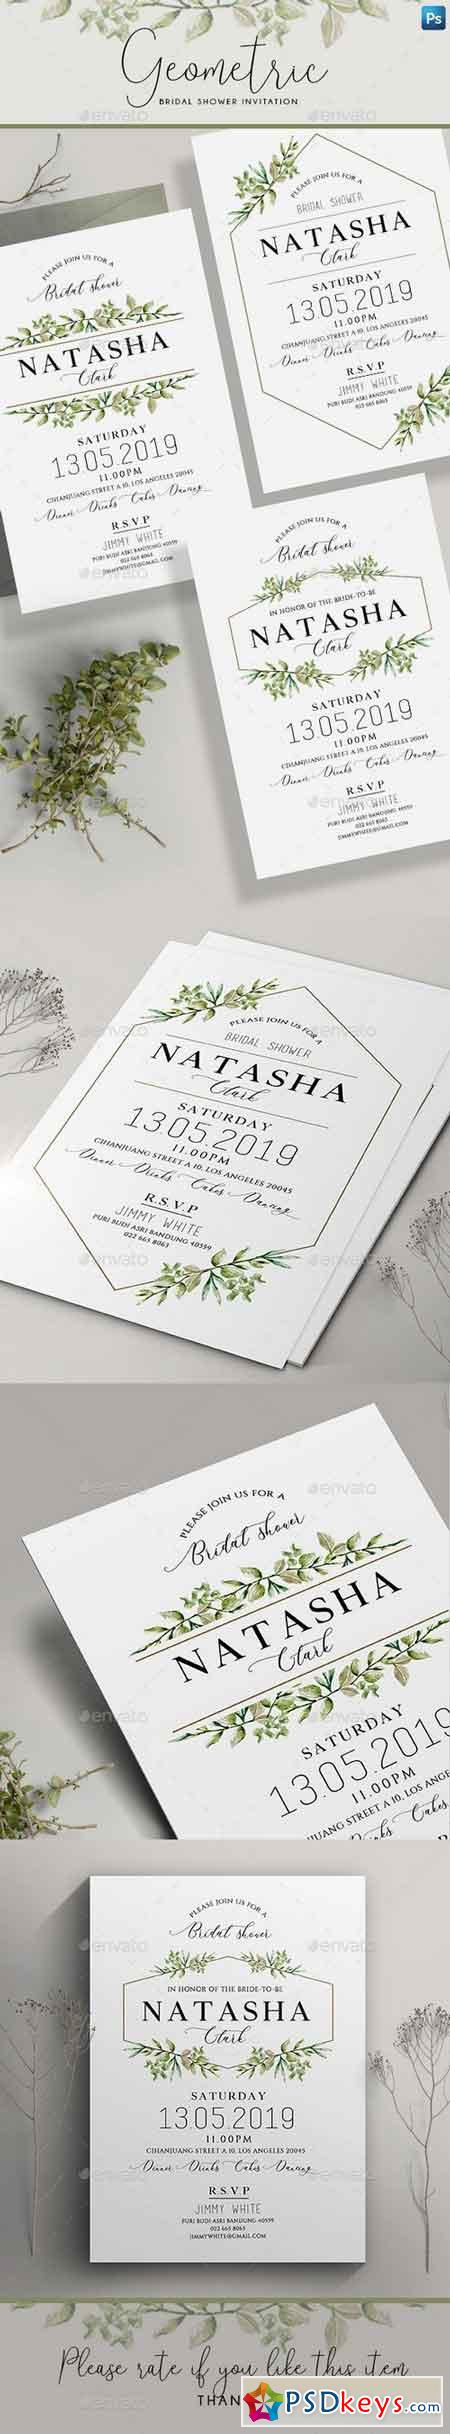 Geometric Bridal Shower Invitation 22264824